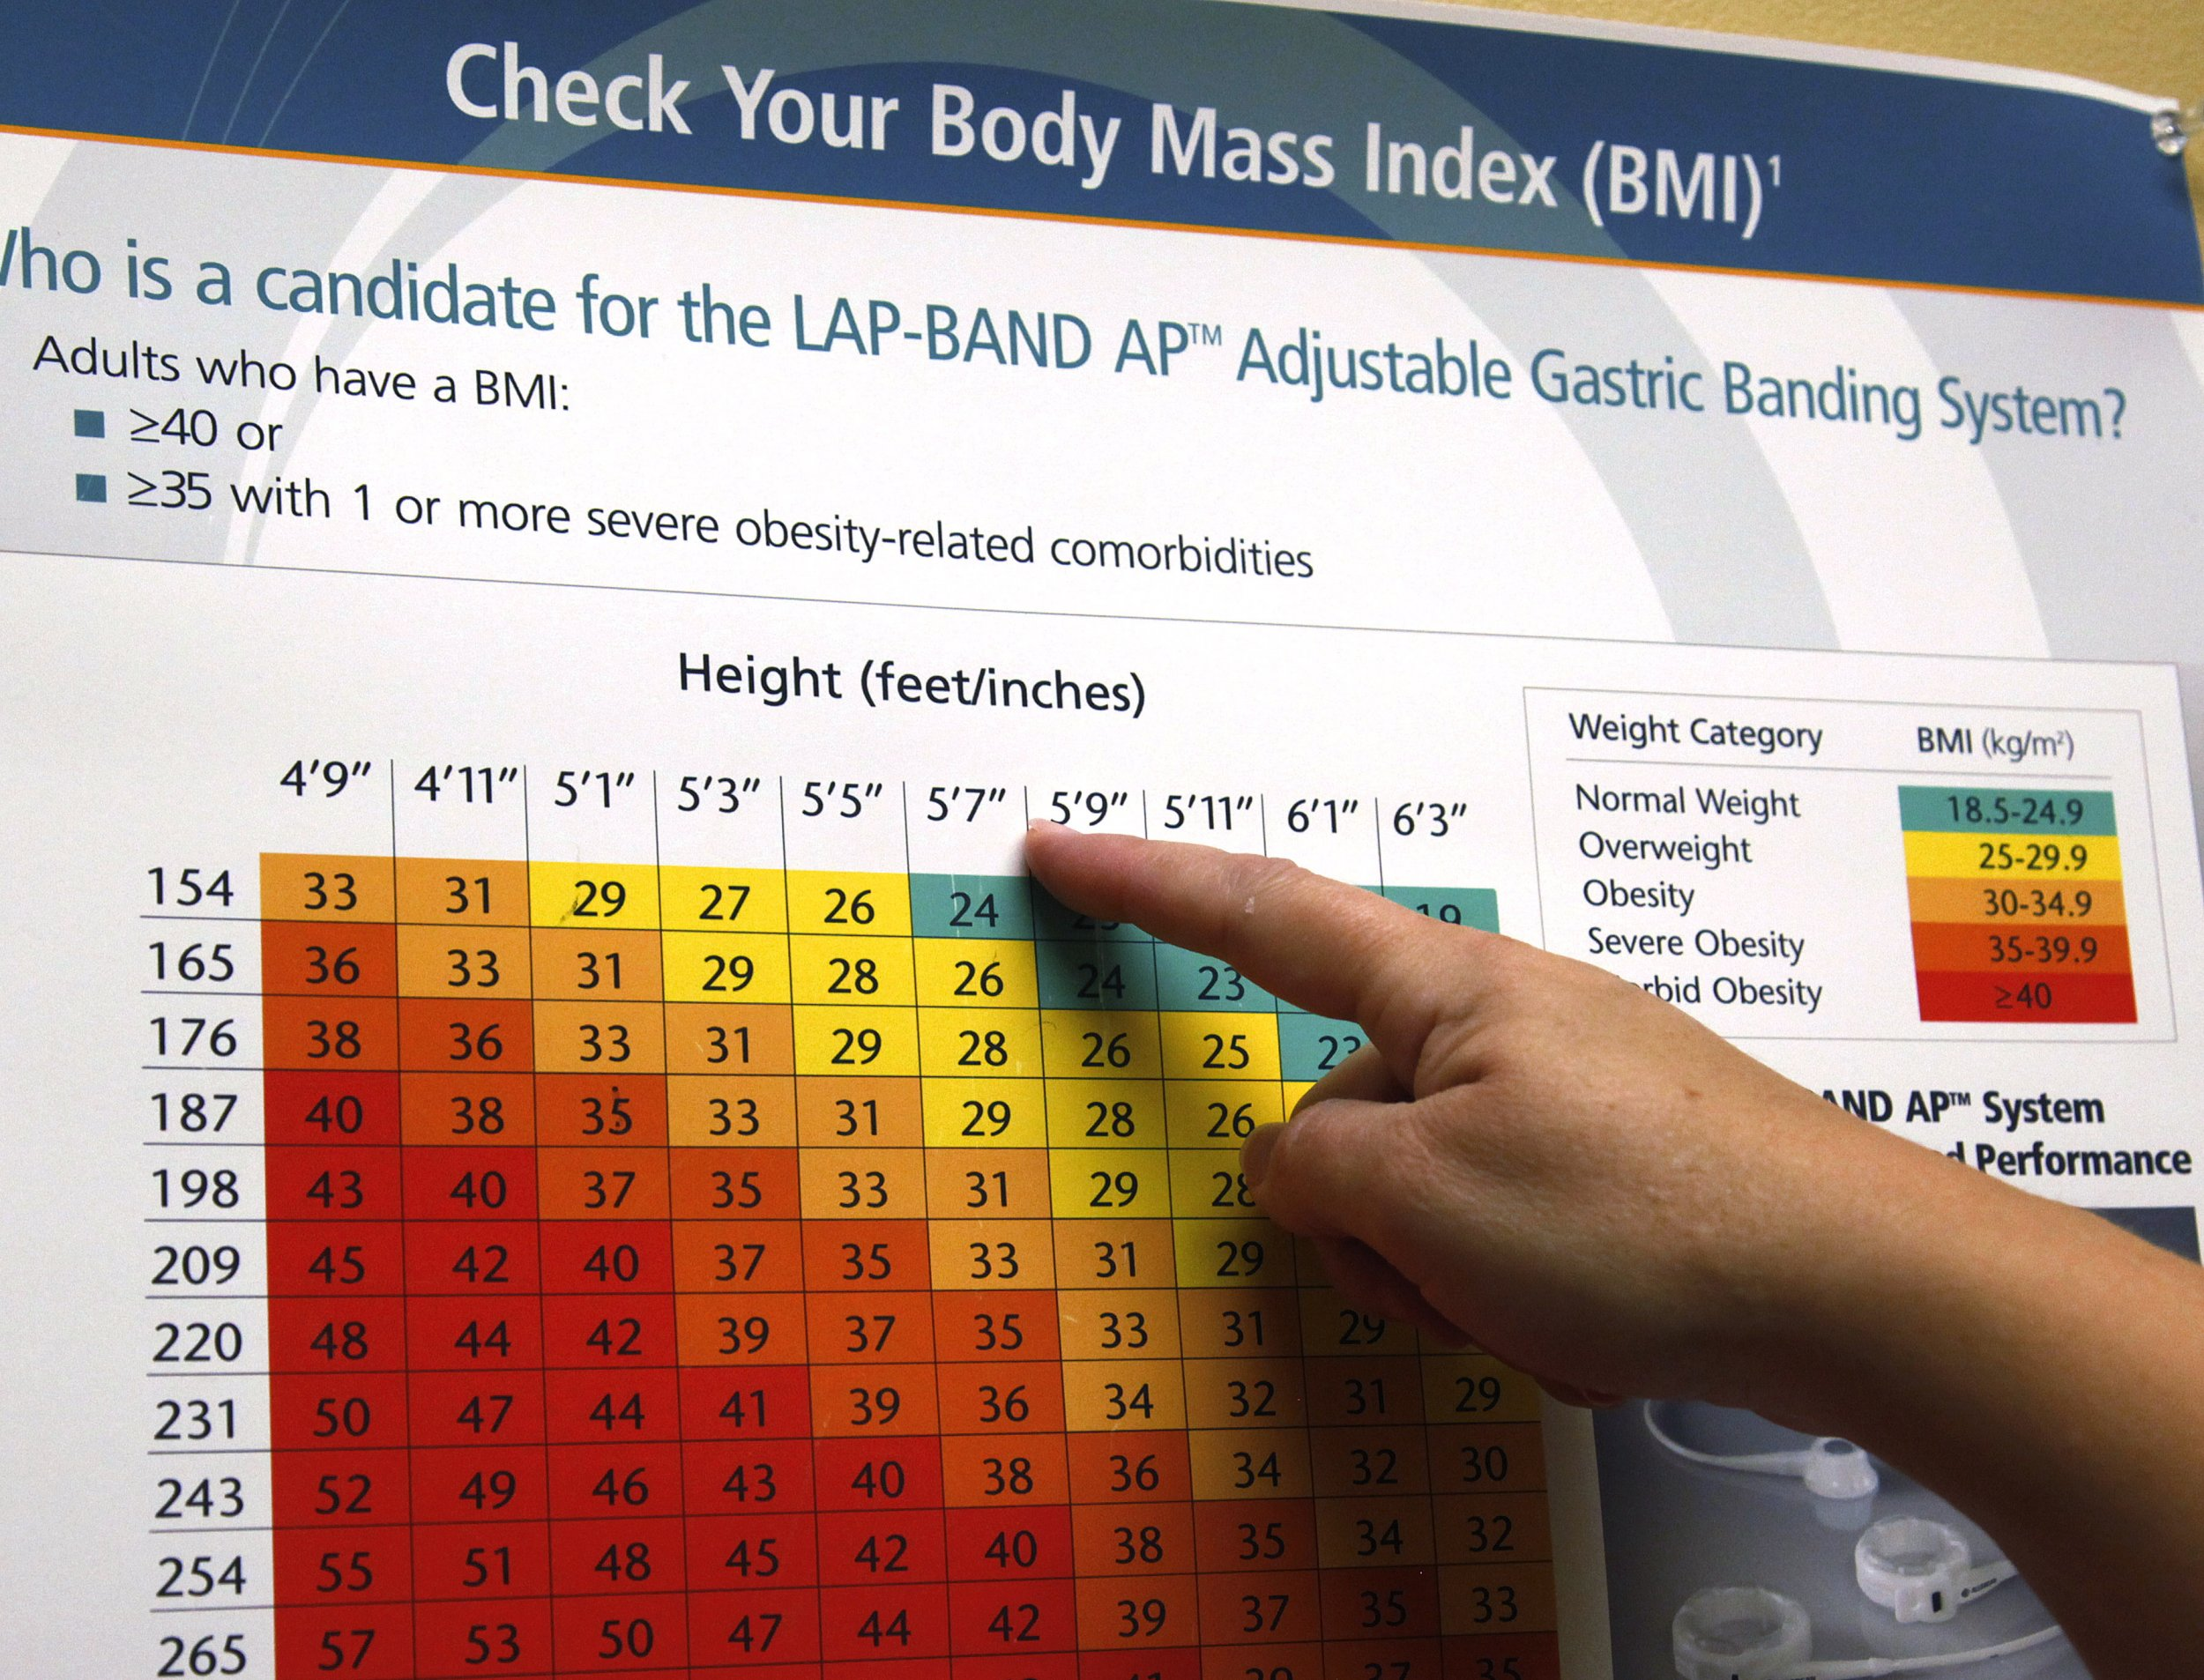 Theres A Dangerous Racial Bias In The Body Mass Index